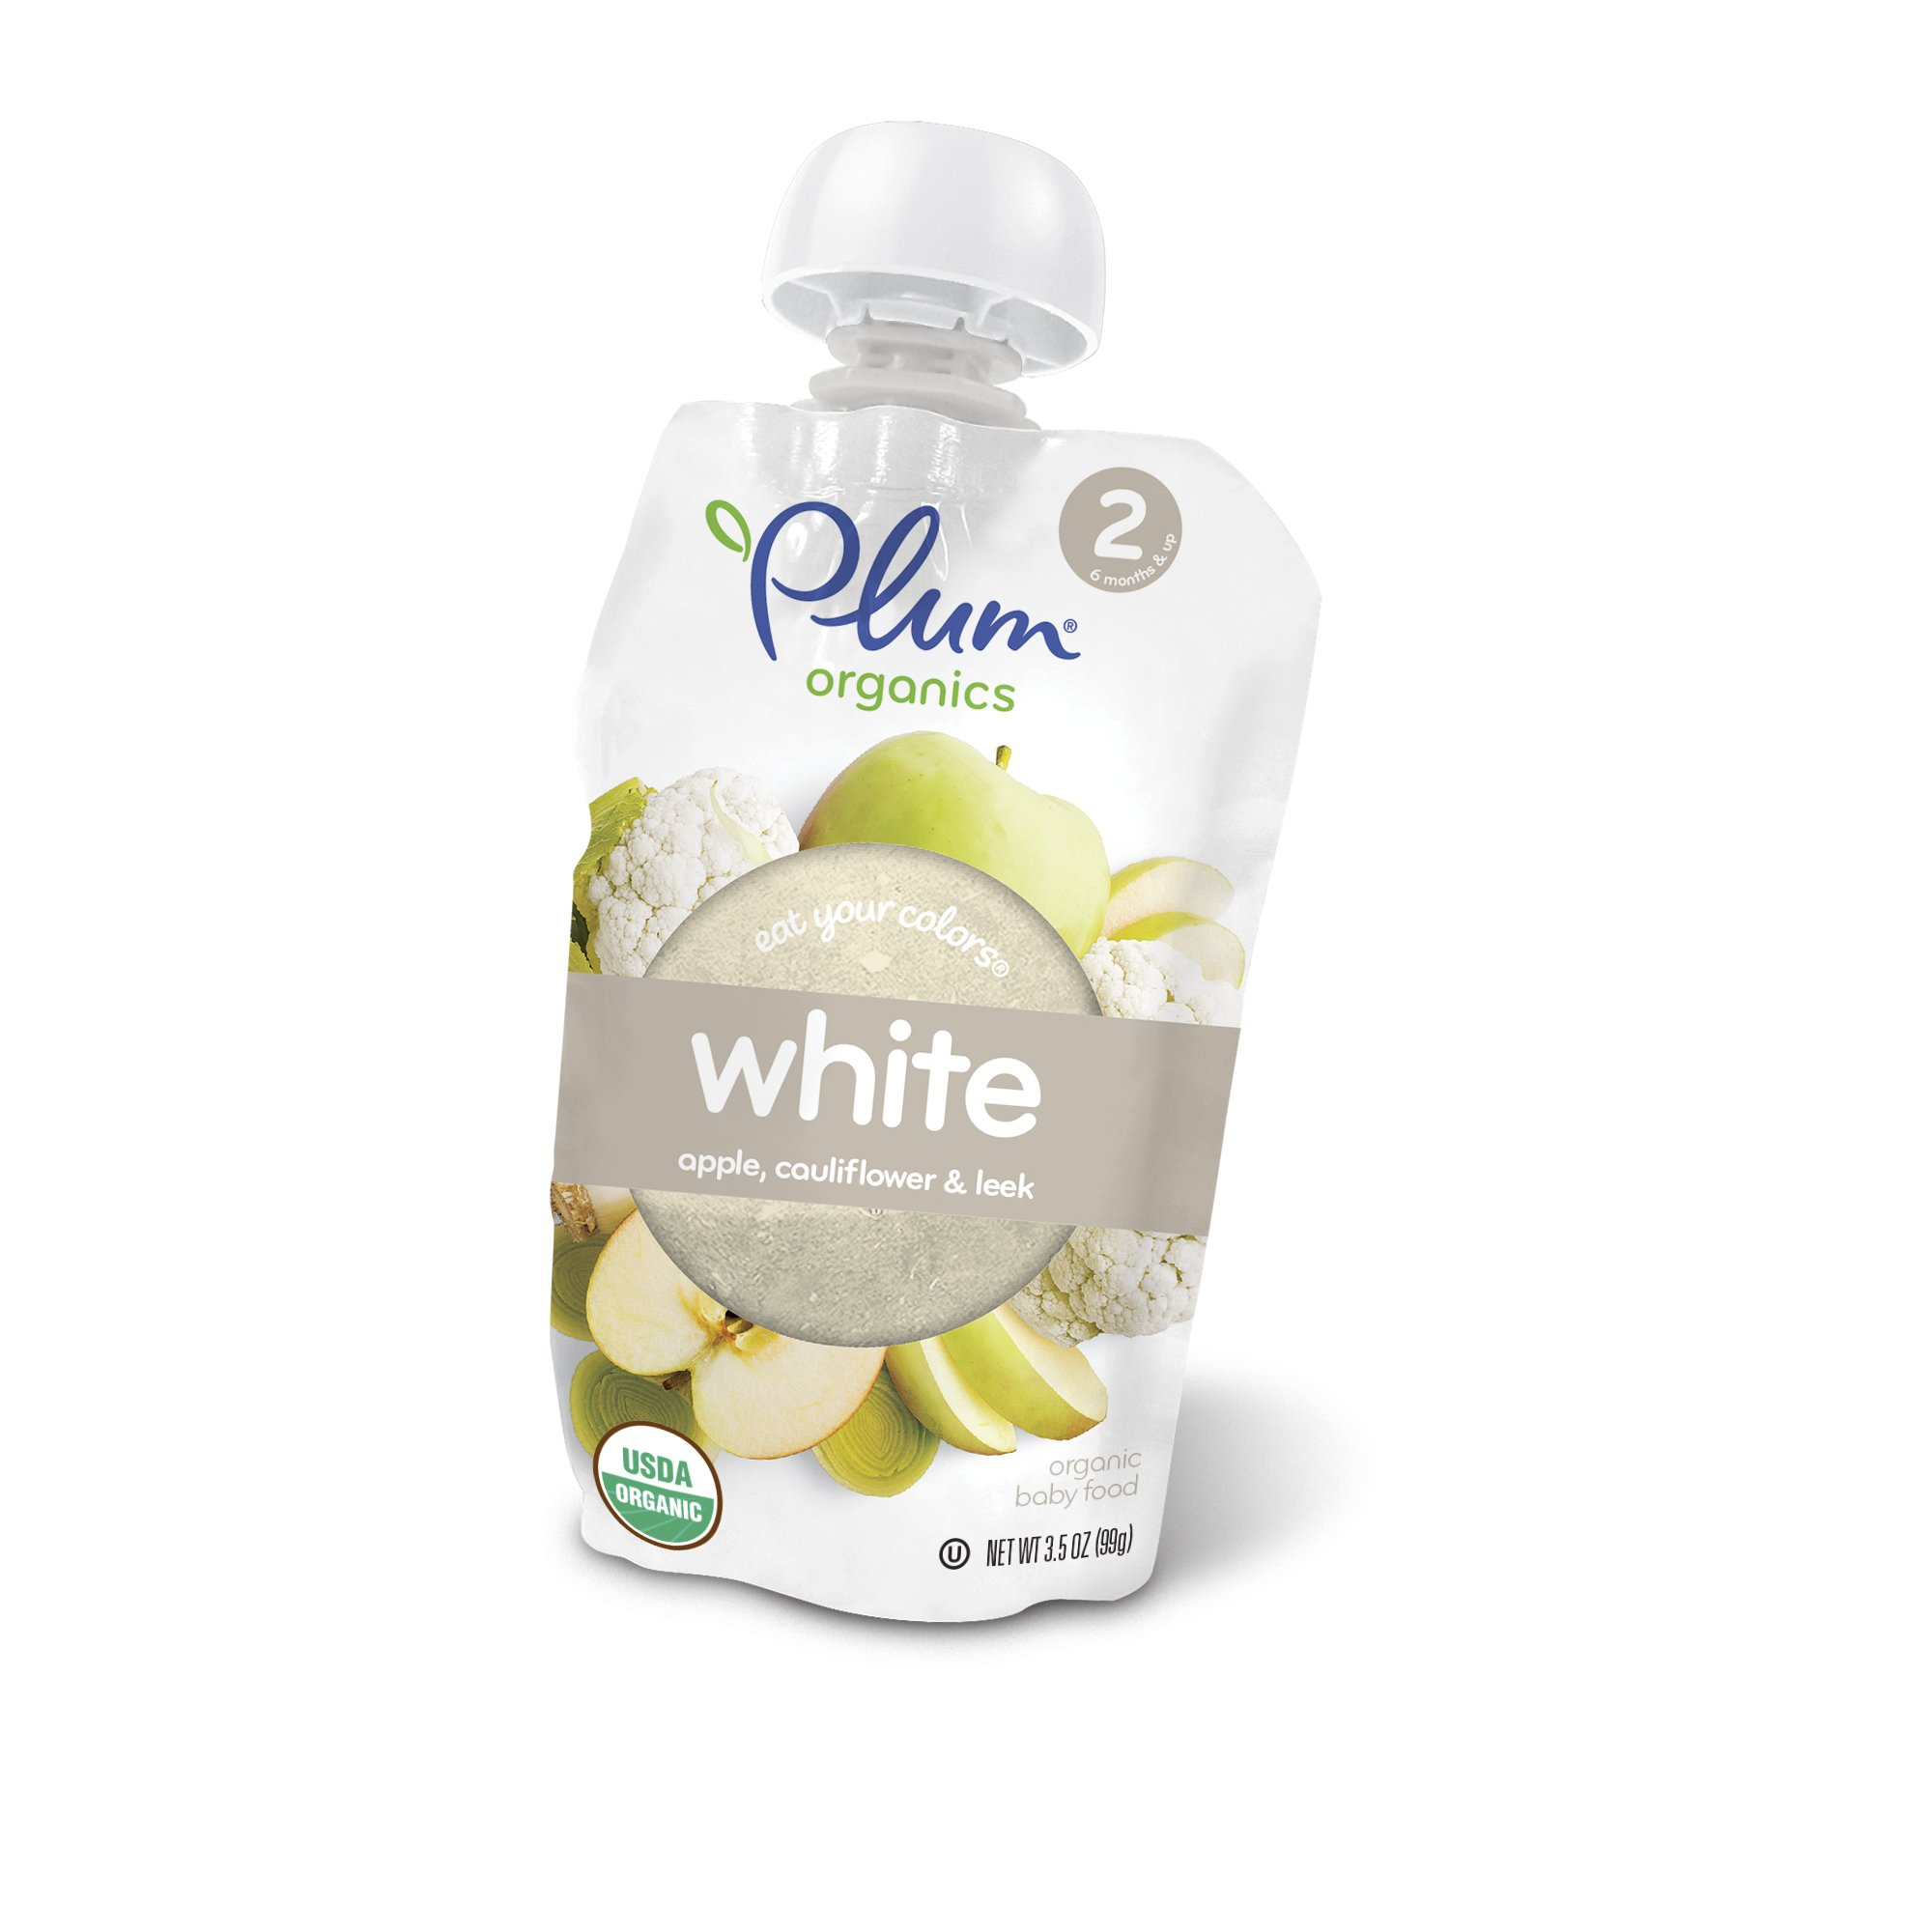 Plum Organics Stage 2 Eat Your Colors White, Organic Baby Food, Apple, Cauliflower and Leek, 3.5 ounce pouch (Pack of 6)